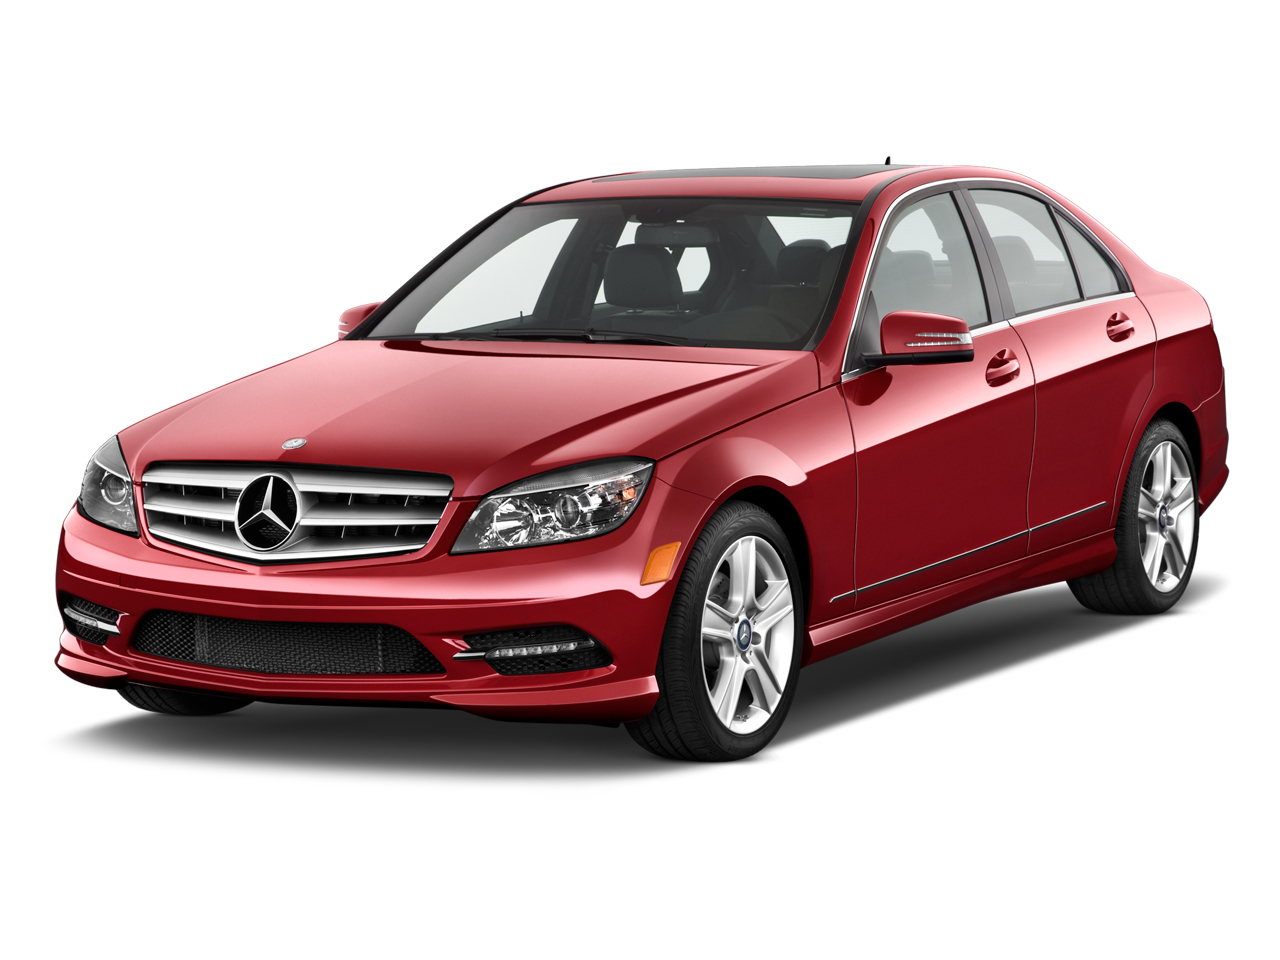 Lojack Mercedes C300 Most Stolen 2011 Luxury Model